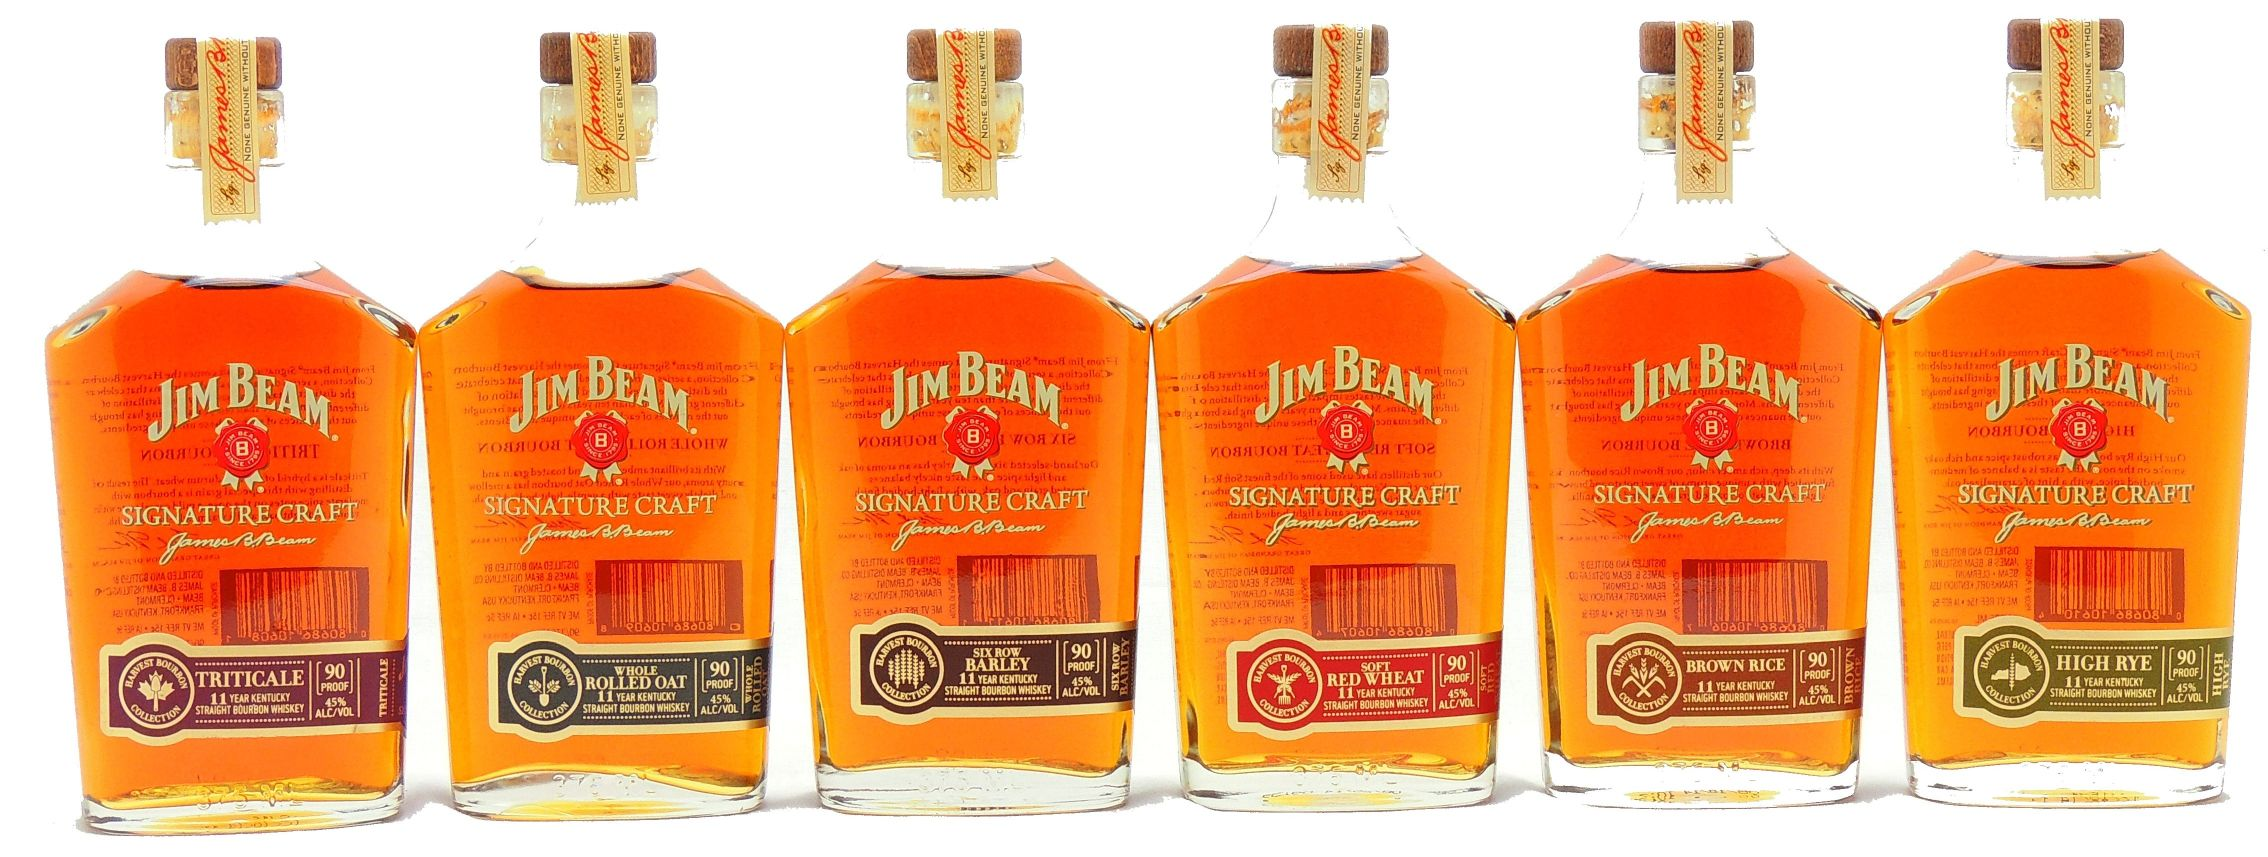 Jim Beam Signature Craft Harvest Bourbon Collection